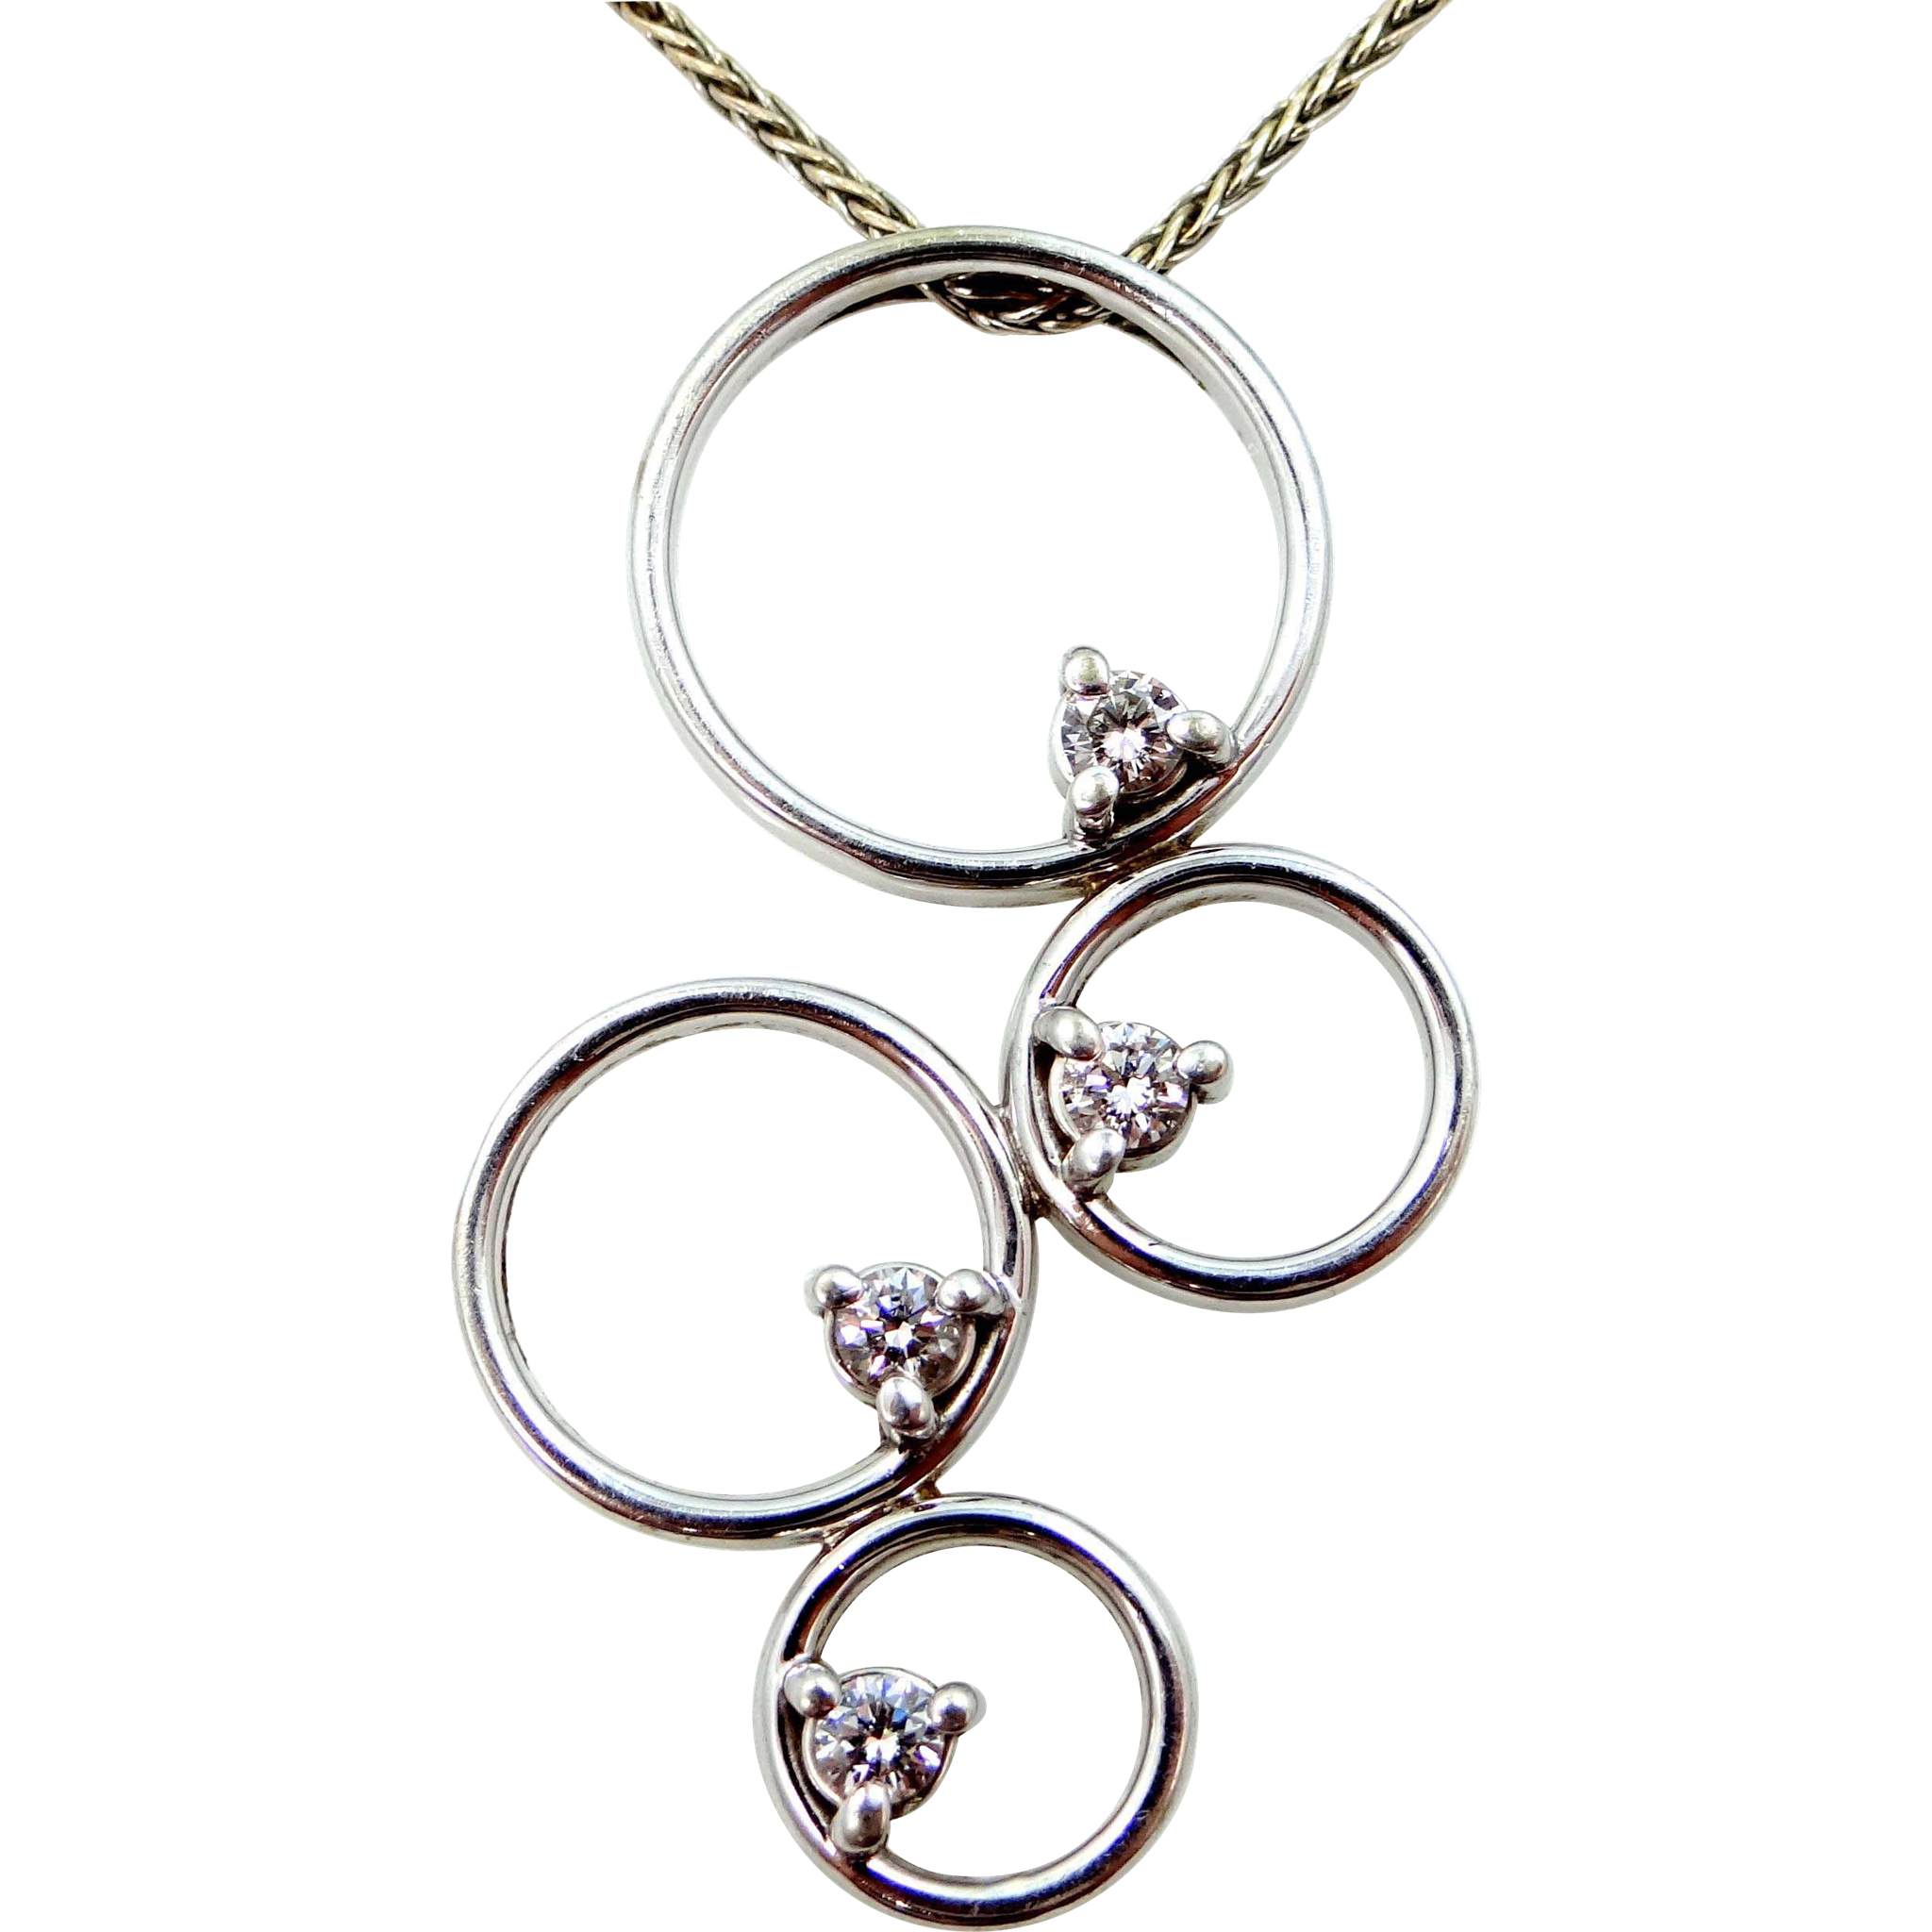 14k White Gold & Diamond MWI Eloquence Necklace